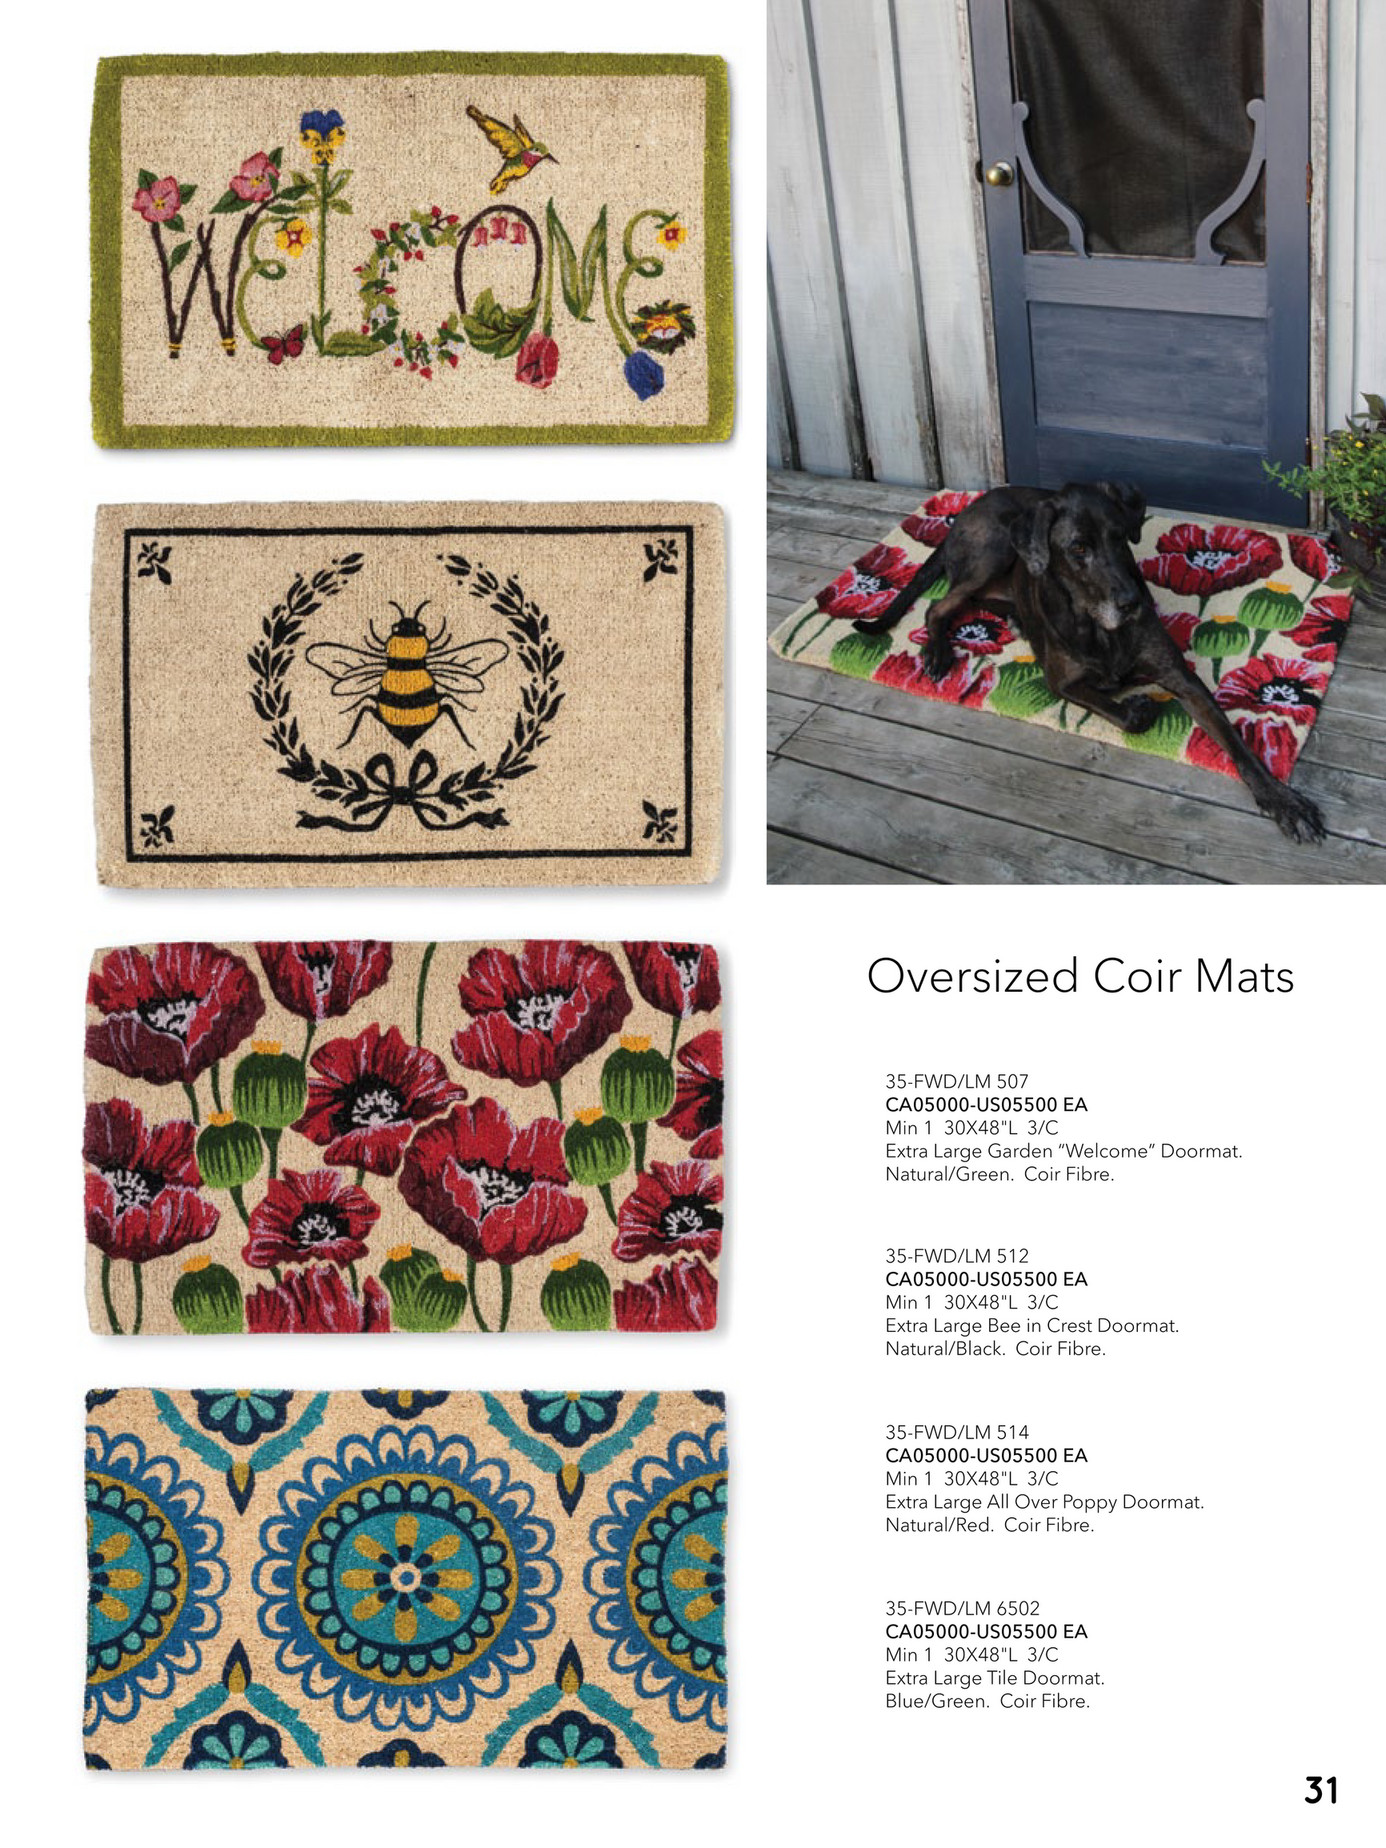 Abbott Collection Coir Poppy Doormat 35-FWD//LM 514 Extra Large